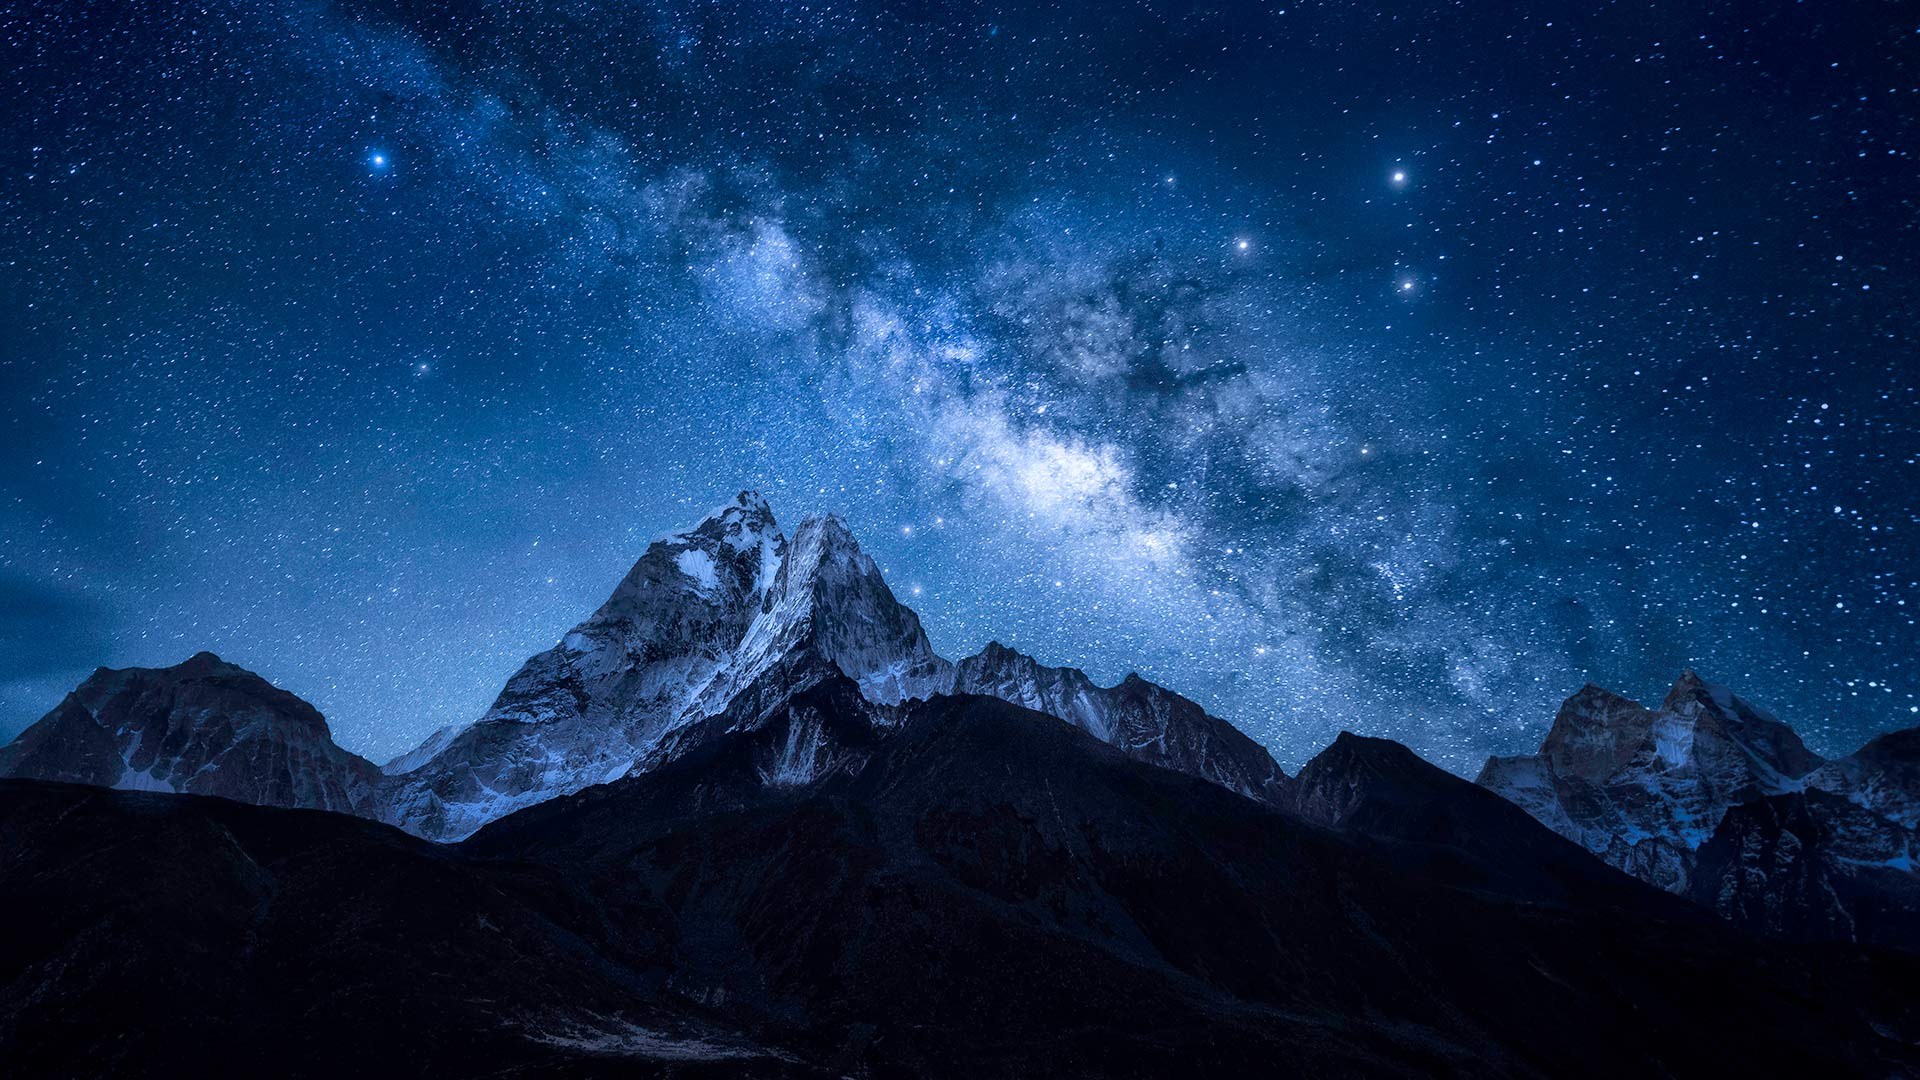 Milky Way over the Himalayan peak Ama Dablam in Nepal (© Weerakarn Satitniramai/Getty Images)